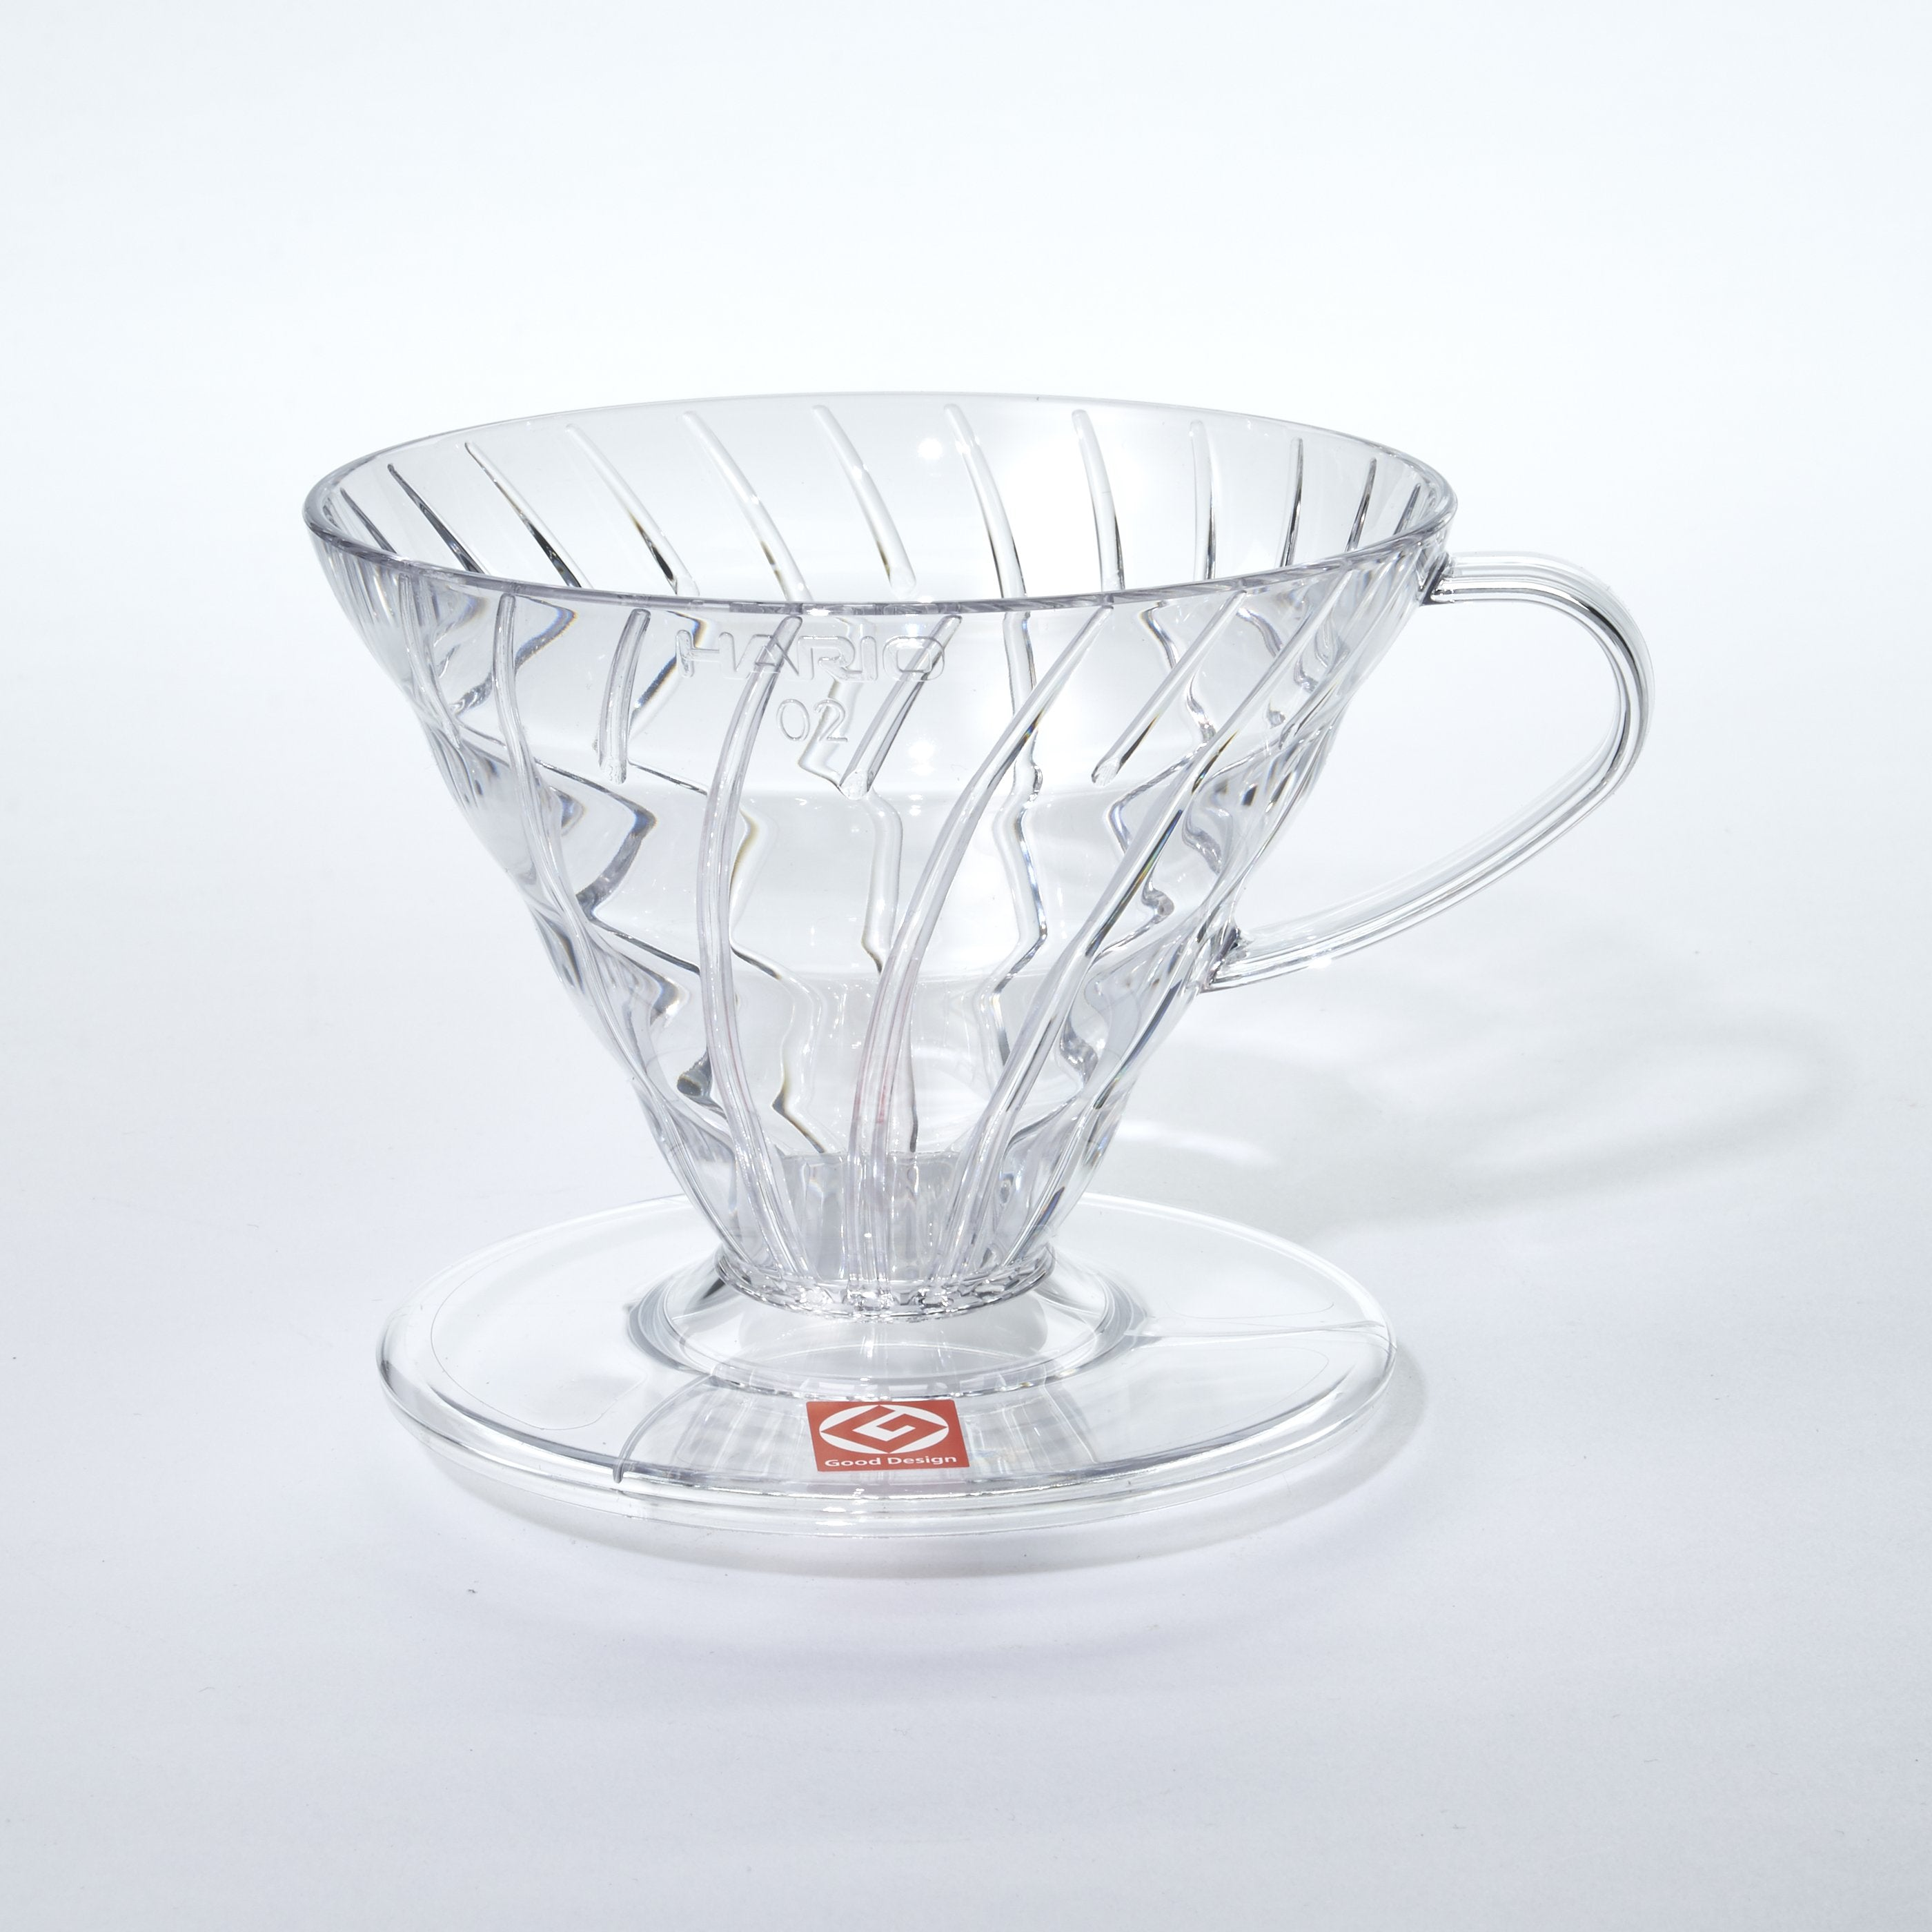 Clear plastic Pour Over V60 Dripper